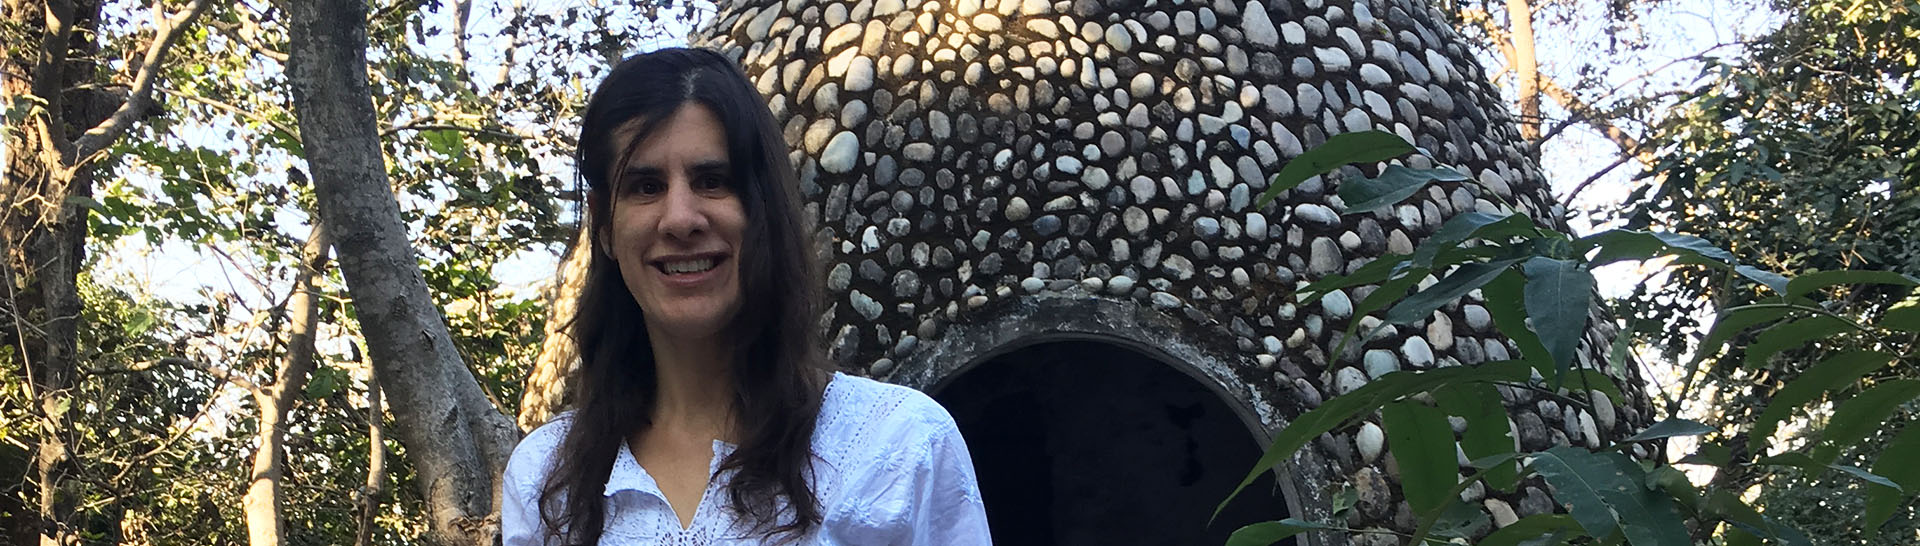 Zel in front of domed stone structure